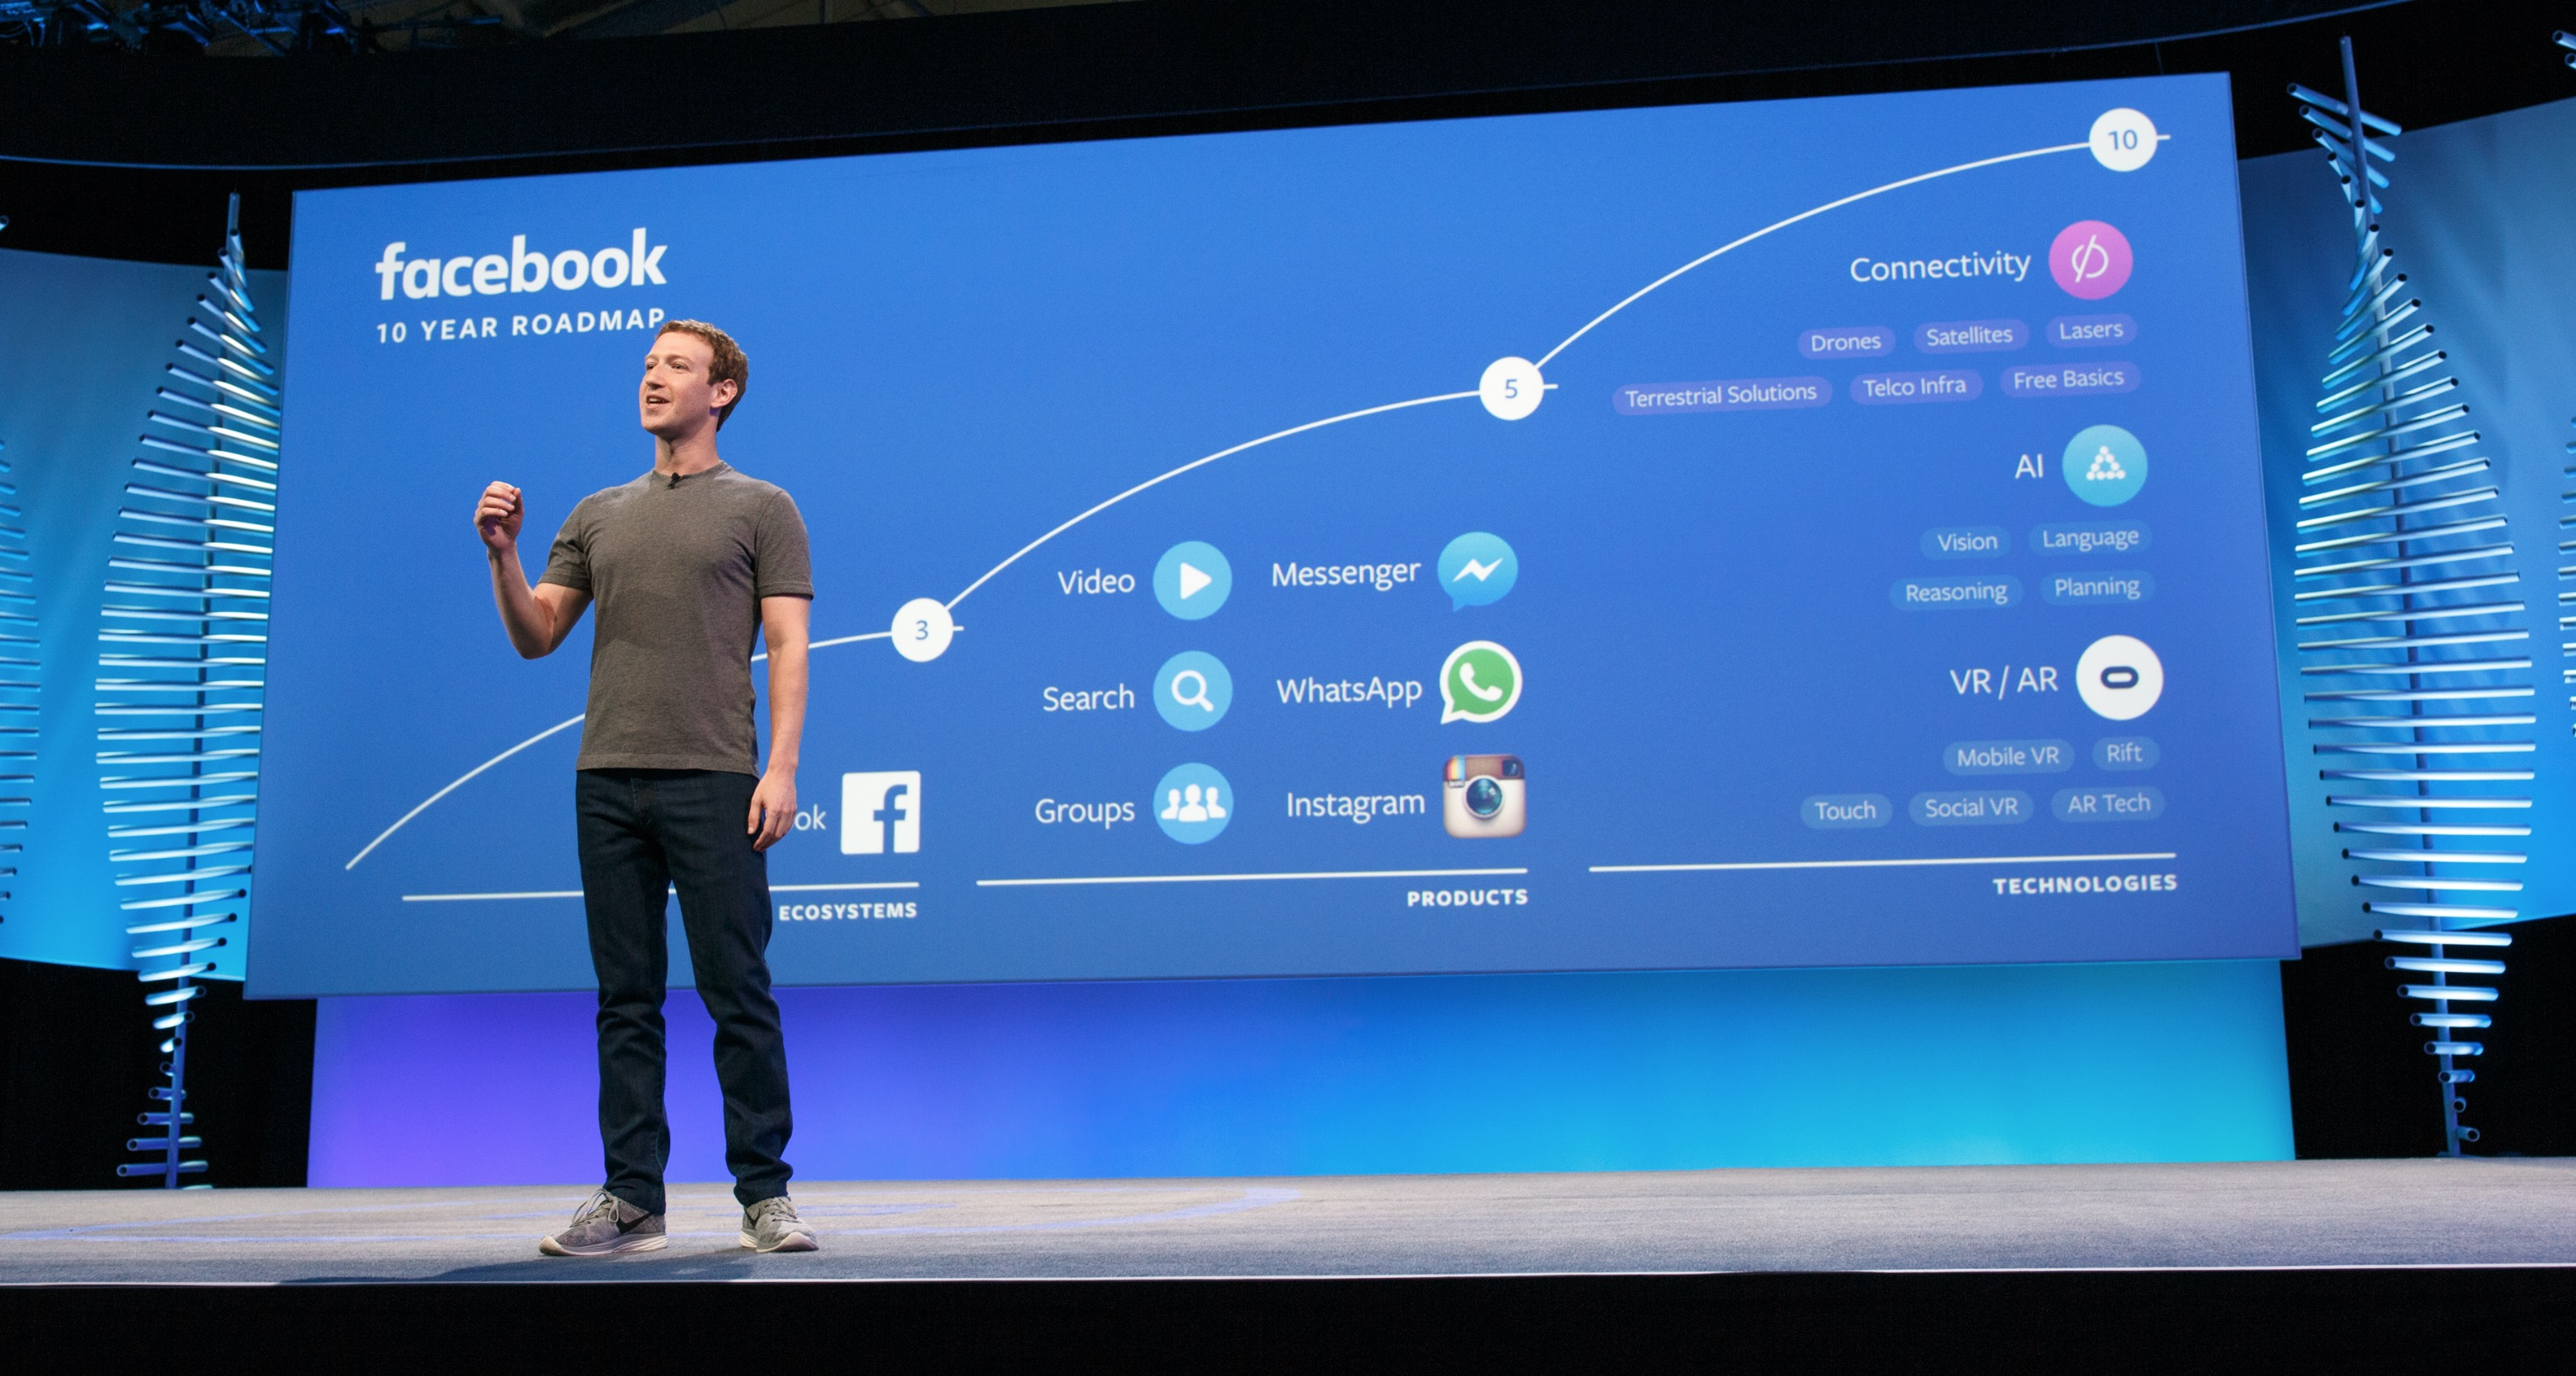 Facebook roadmap 10 anni